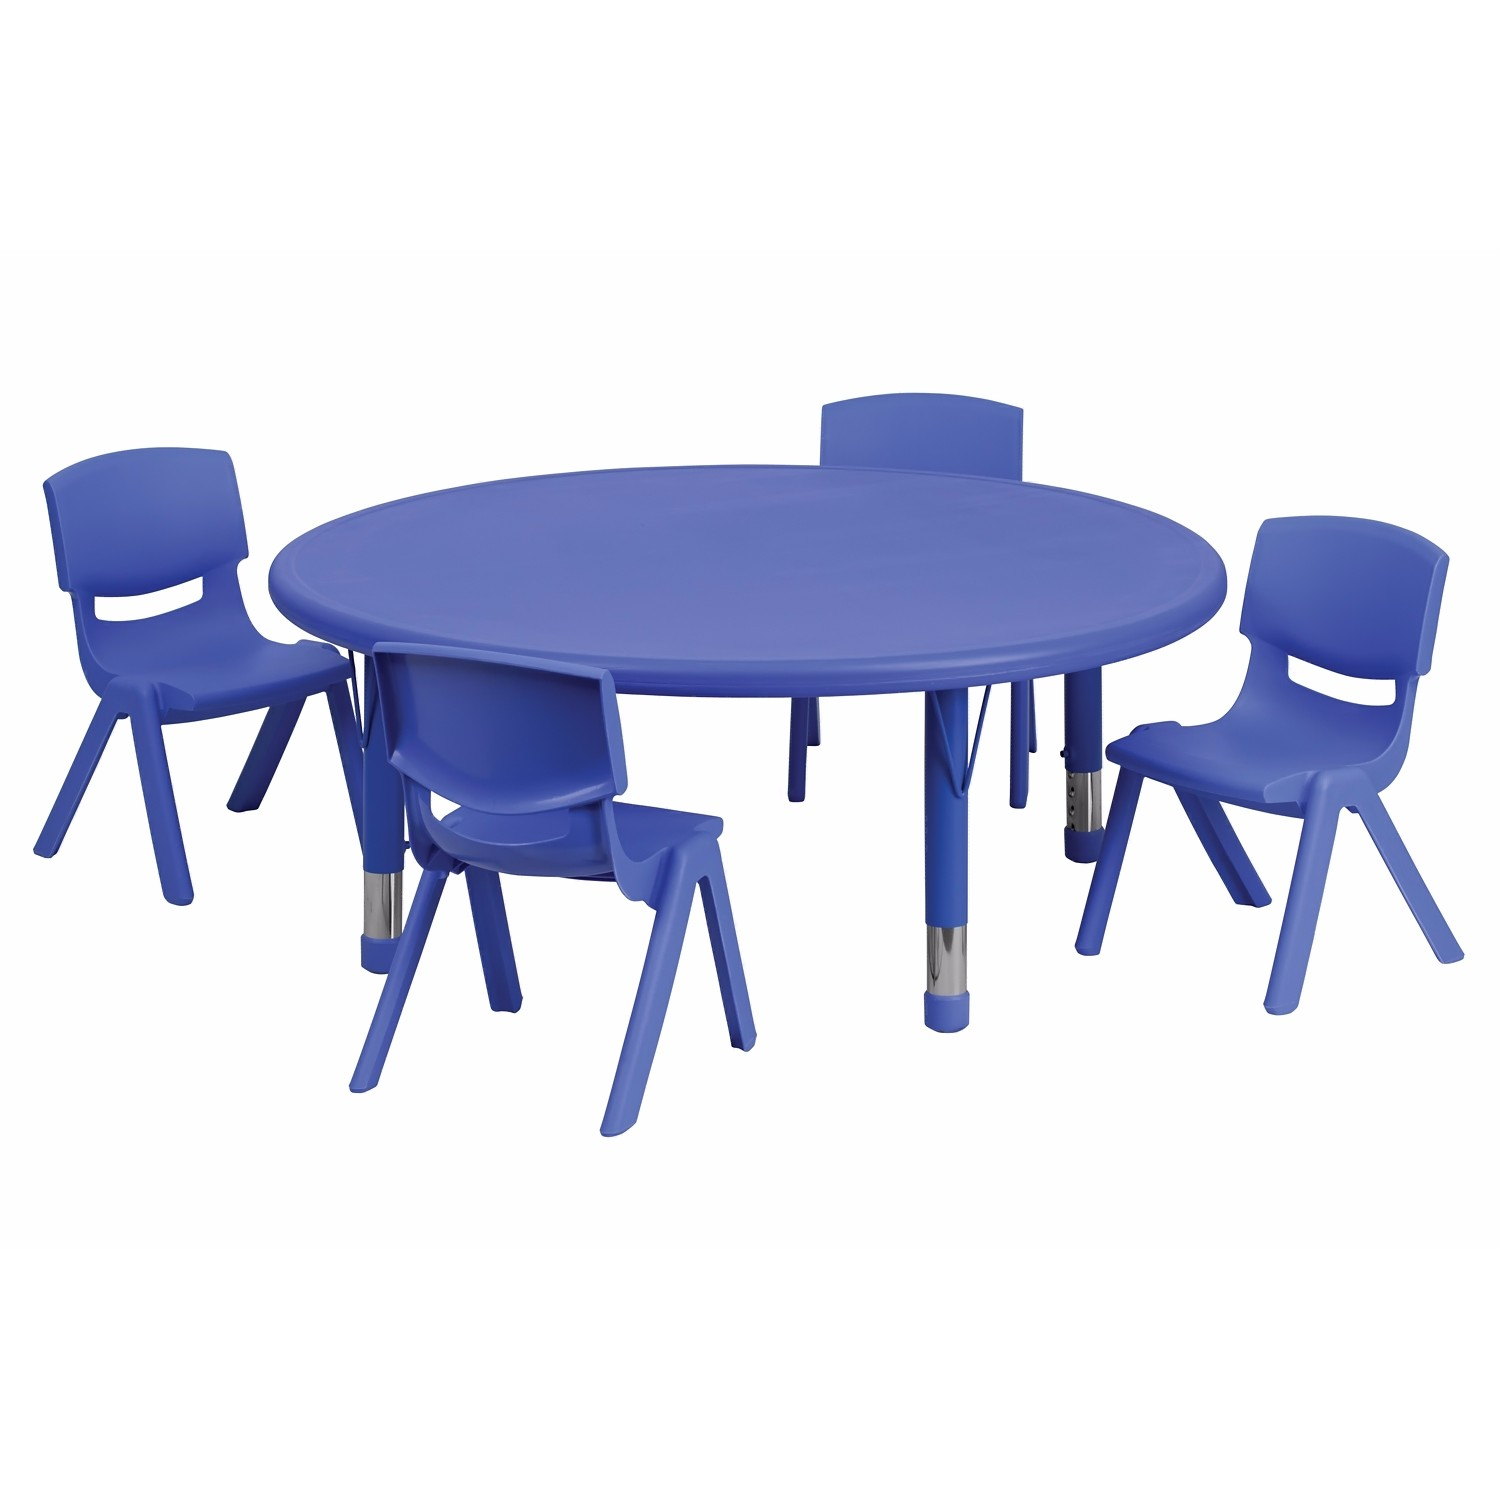 Flash Furniture 45'' Round Adjustable Blue Plastic Activity Table Set with 4 School Stack Chairs [YU-YCX-0053-2-ROUND-TBL-BLUE-E-GG] at Sears.com